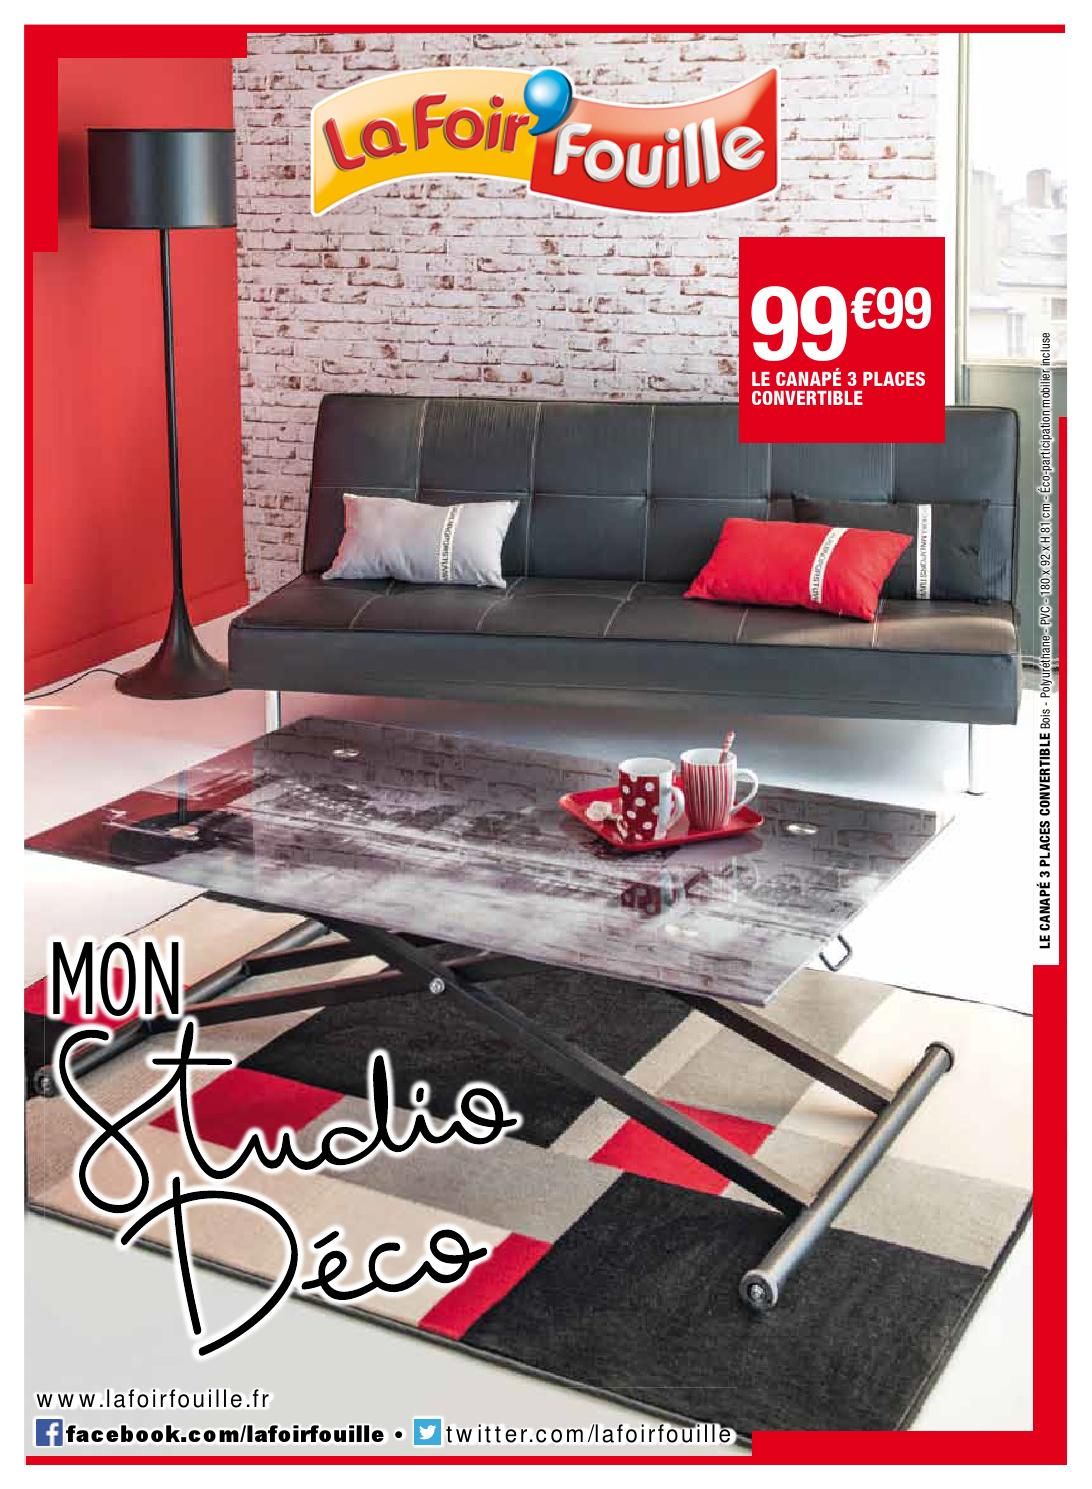 Canapé La Foir Fouille Catalogue La Foir Fouille Mon Studio Déco By Joe Monroe Issuu